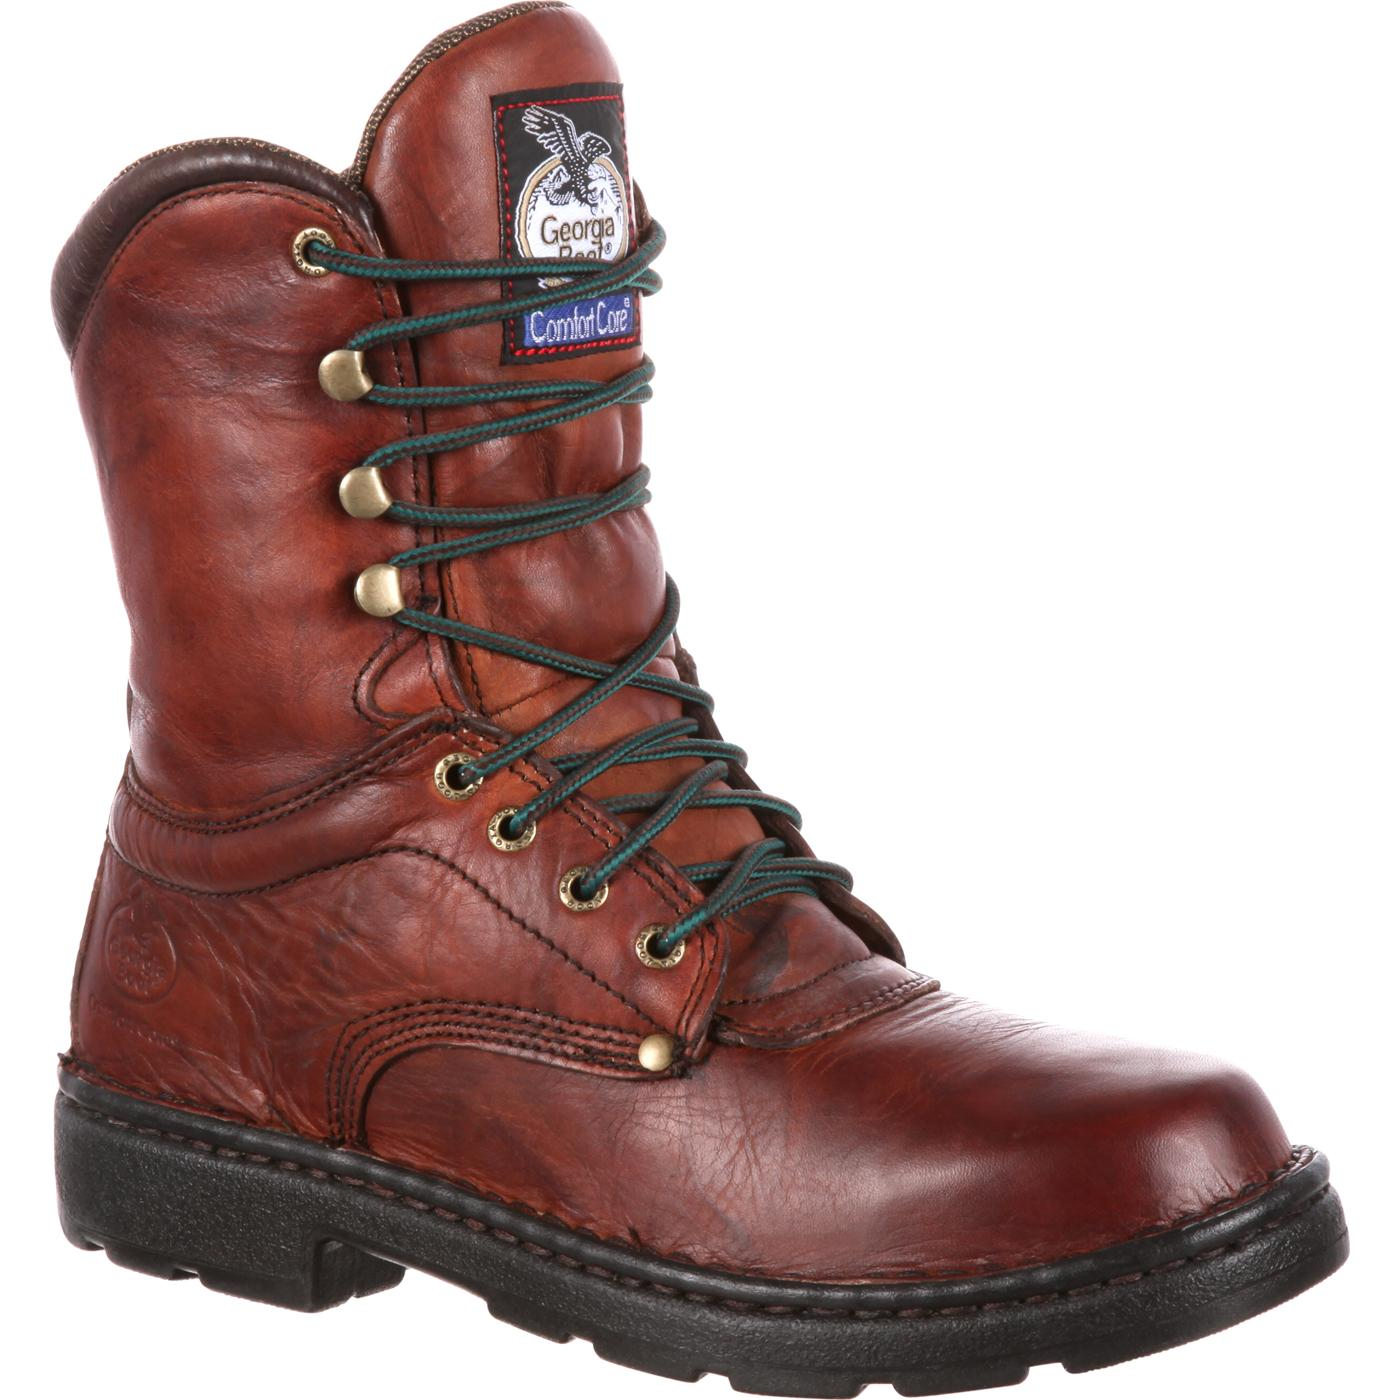 d8e7bec1ab70c4 Georgia Boot Eagle Light Work Boot 8 Inches in height Comfort Core ...